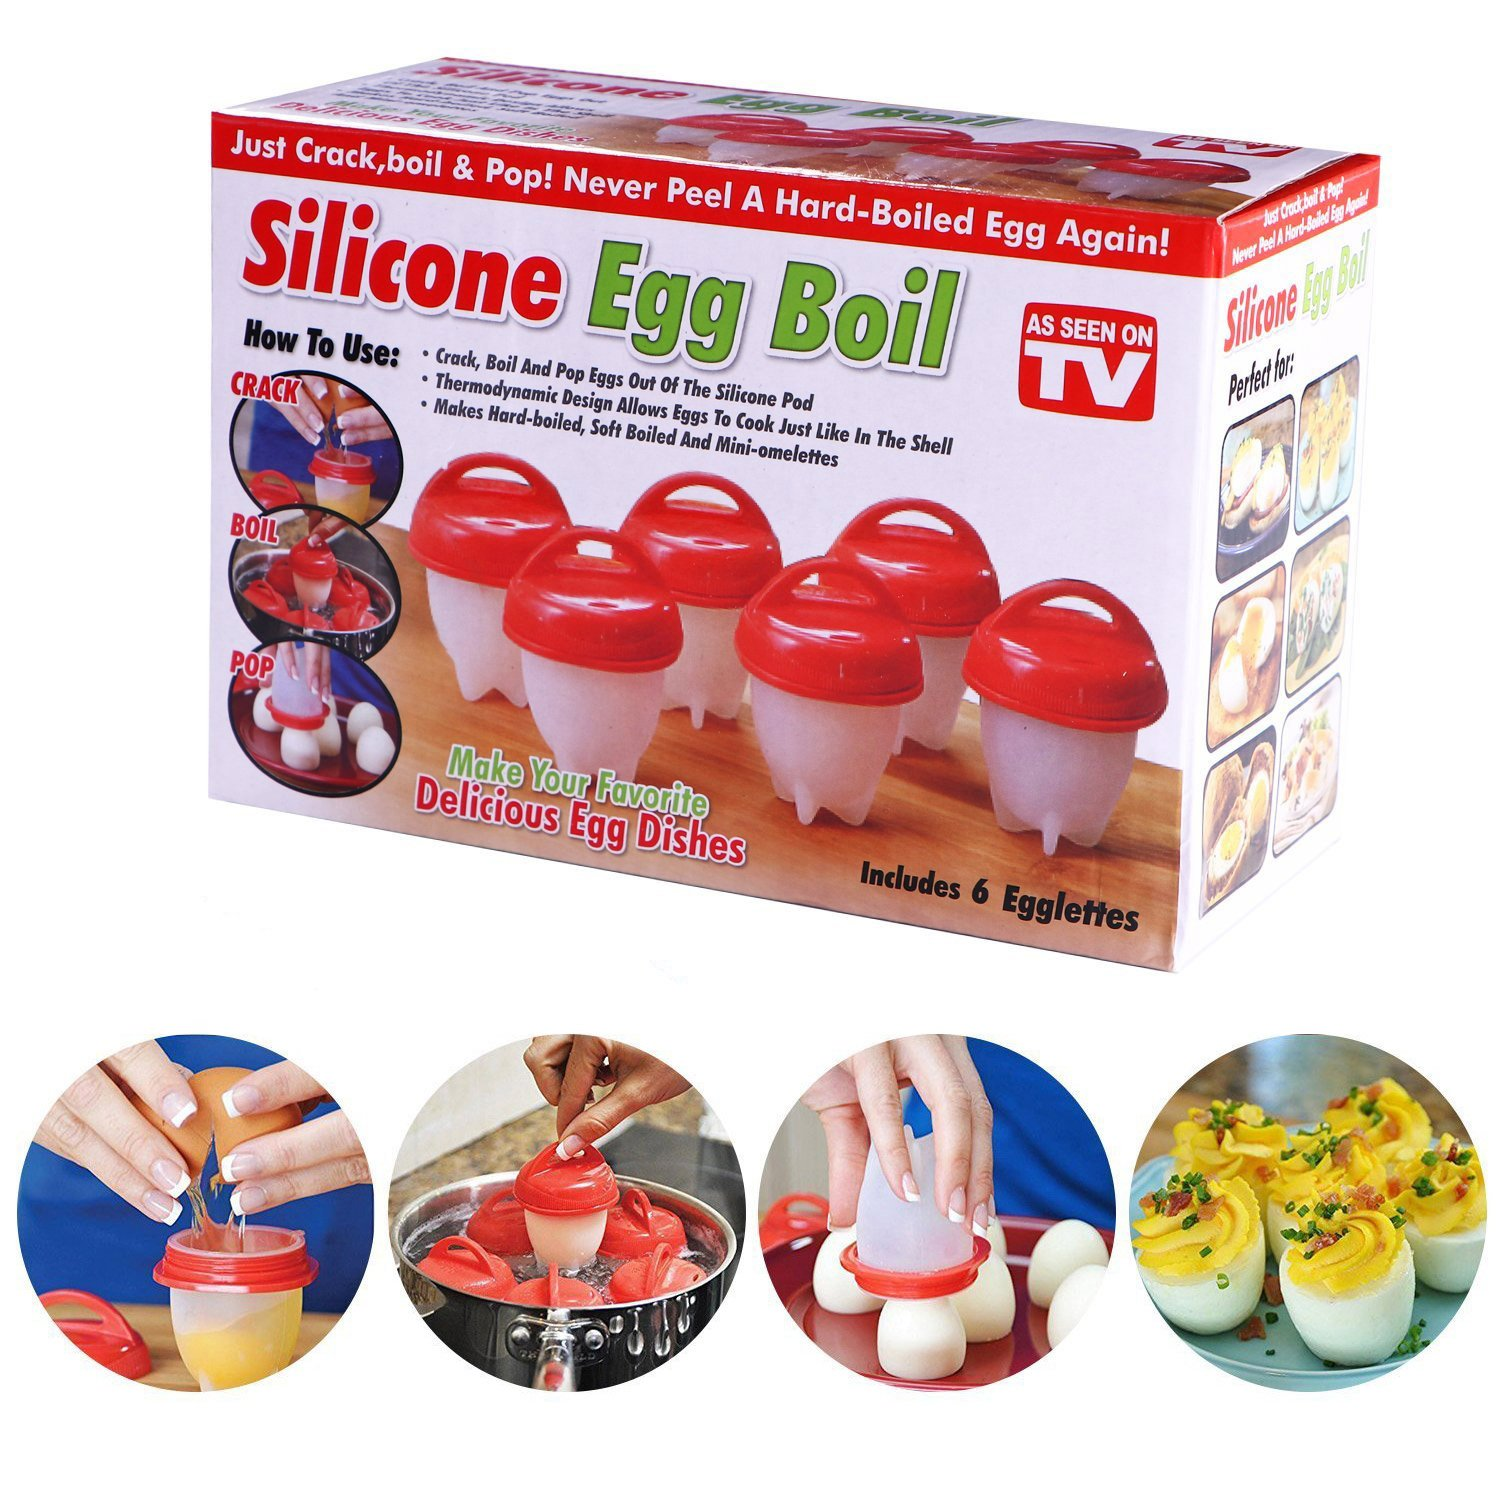 MABOLON 6 Pack Egg Cooker, Hard & Soft Maker, Non Stick Silicone Eggs Boiler Cookers without Egg Shell, BPA Free, As Seen On TV